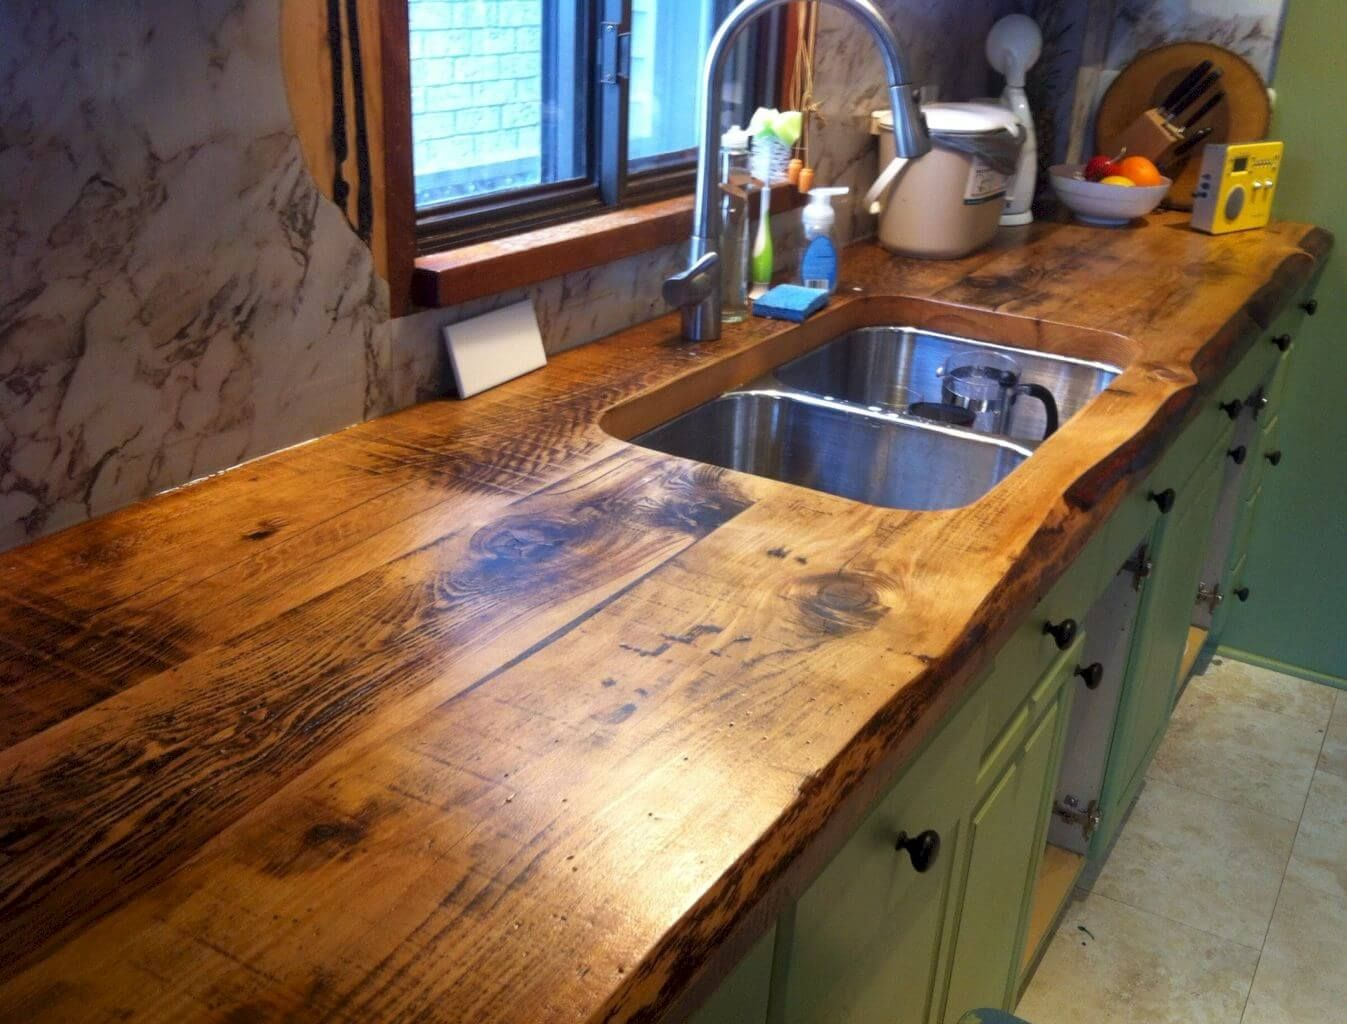 26 Farmhouse Kitchen Sink Ideas That Will Make Your Space Charming